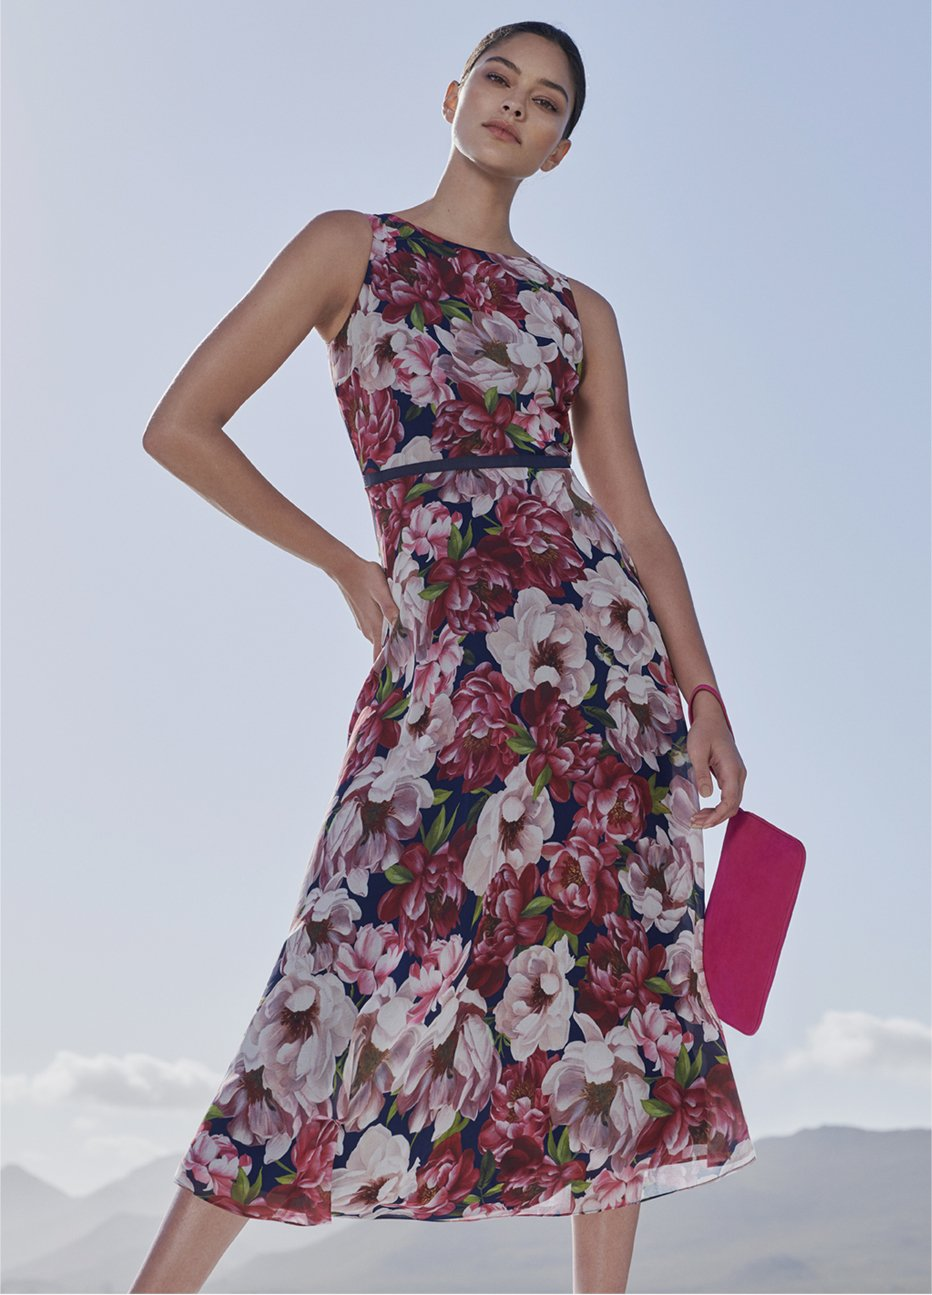 Midi-length occasion dress with a pink floral pattern paired with a pink wristlet clutch and flat shoes by Hobbs.